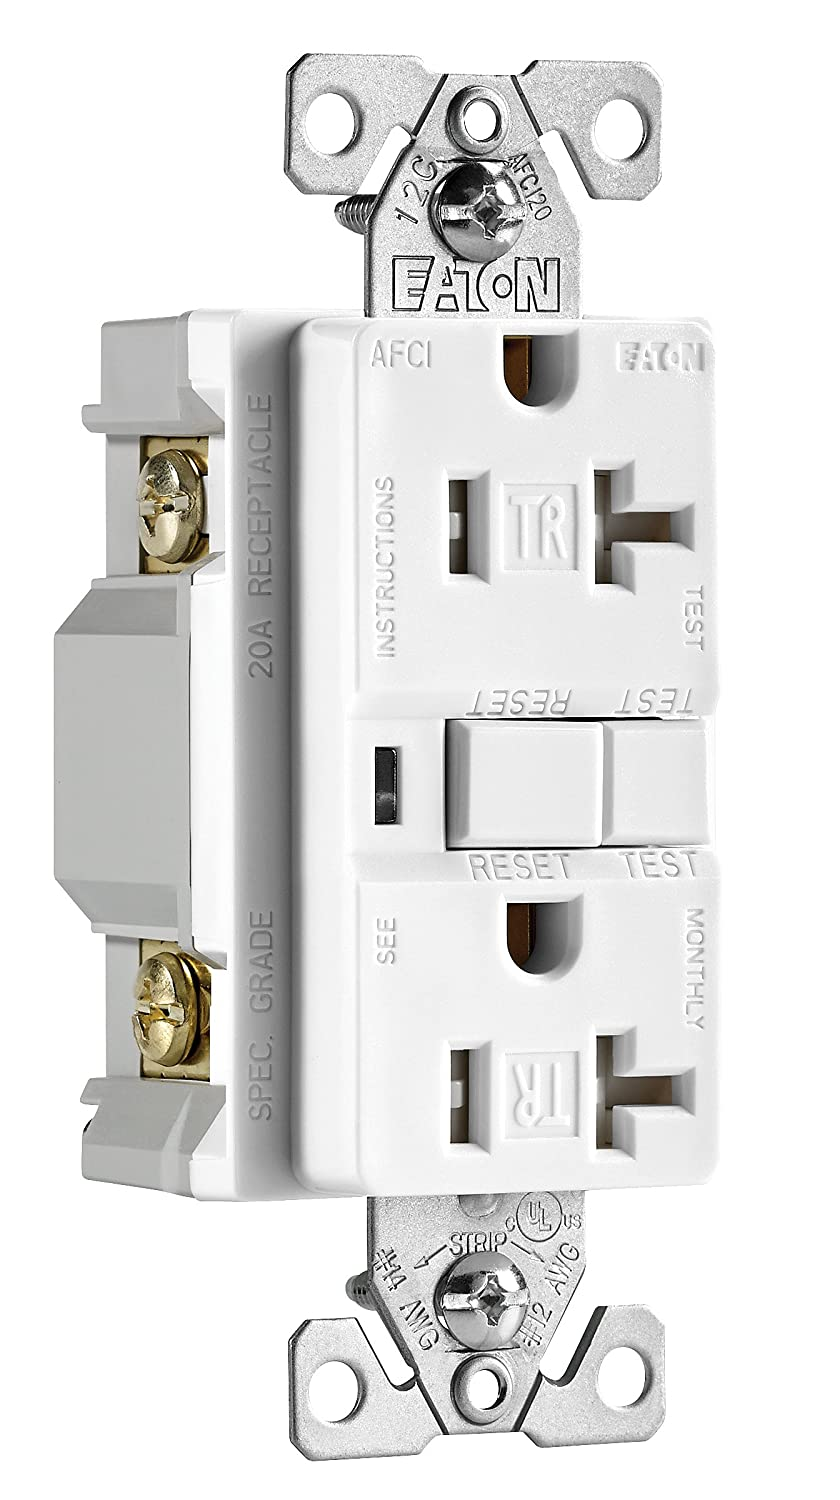 Eaton Wiring Trafci20w 20 Amp Tamper Resistant Afci Receptacle Star Receptacles White Finish